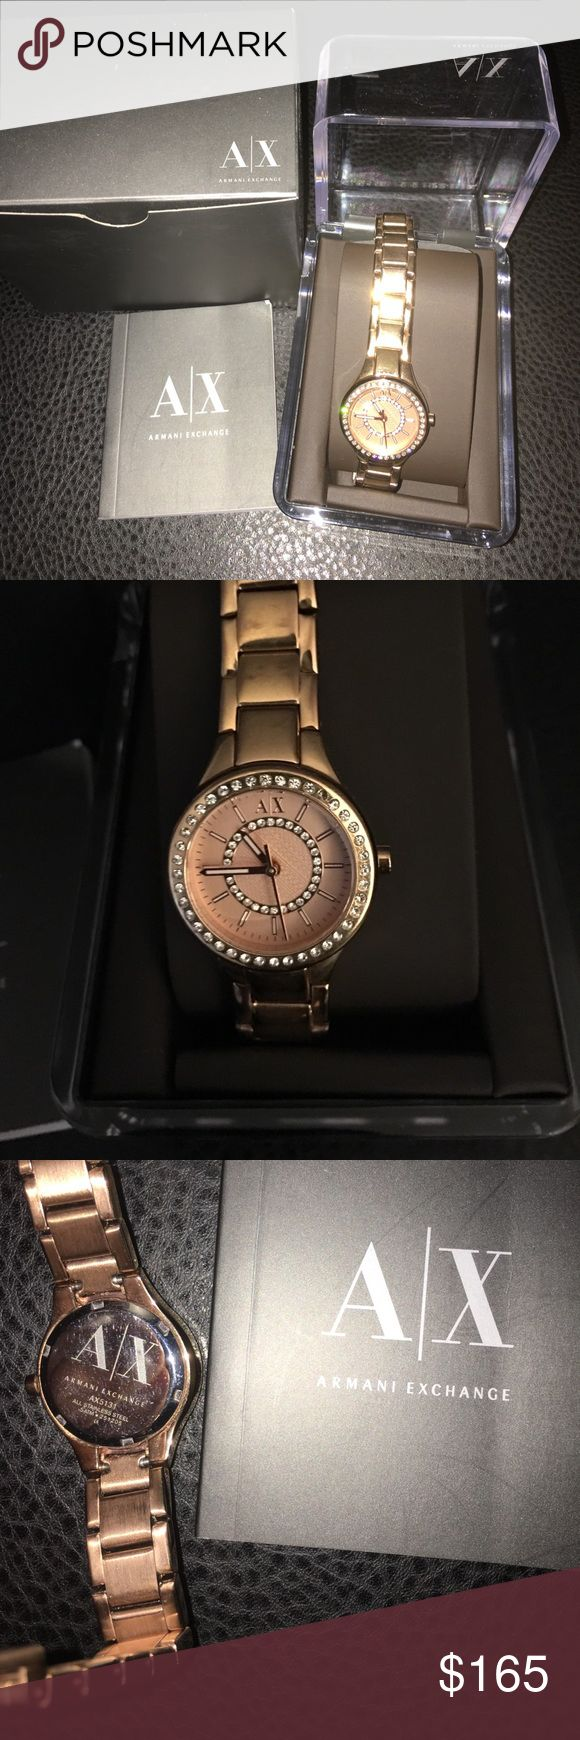 Armani Exchange Women's Rose Gold Watch Armani Exchange Women's Rose Gold watch. Purchased from Macy's dept store. Was my fav watch but finally parting with it. Don't wear it that much. Would only wear when I dressed up & special occasions! I had 1 link taken out by the store to make it tighter on my wrist. Can easily be put back in. Also will need a new battery! Also 1 of the diamonds is missing from face of watch. Can barely tell! A/X Armani Exchange Accessories Watches